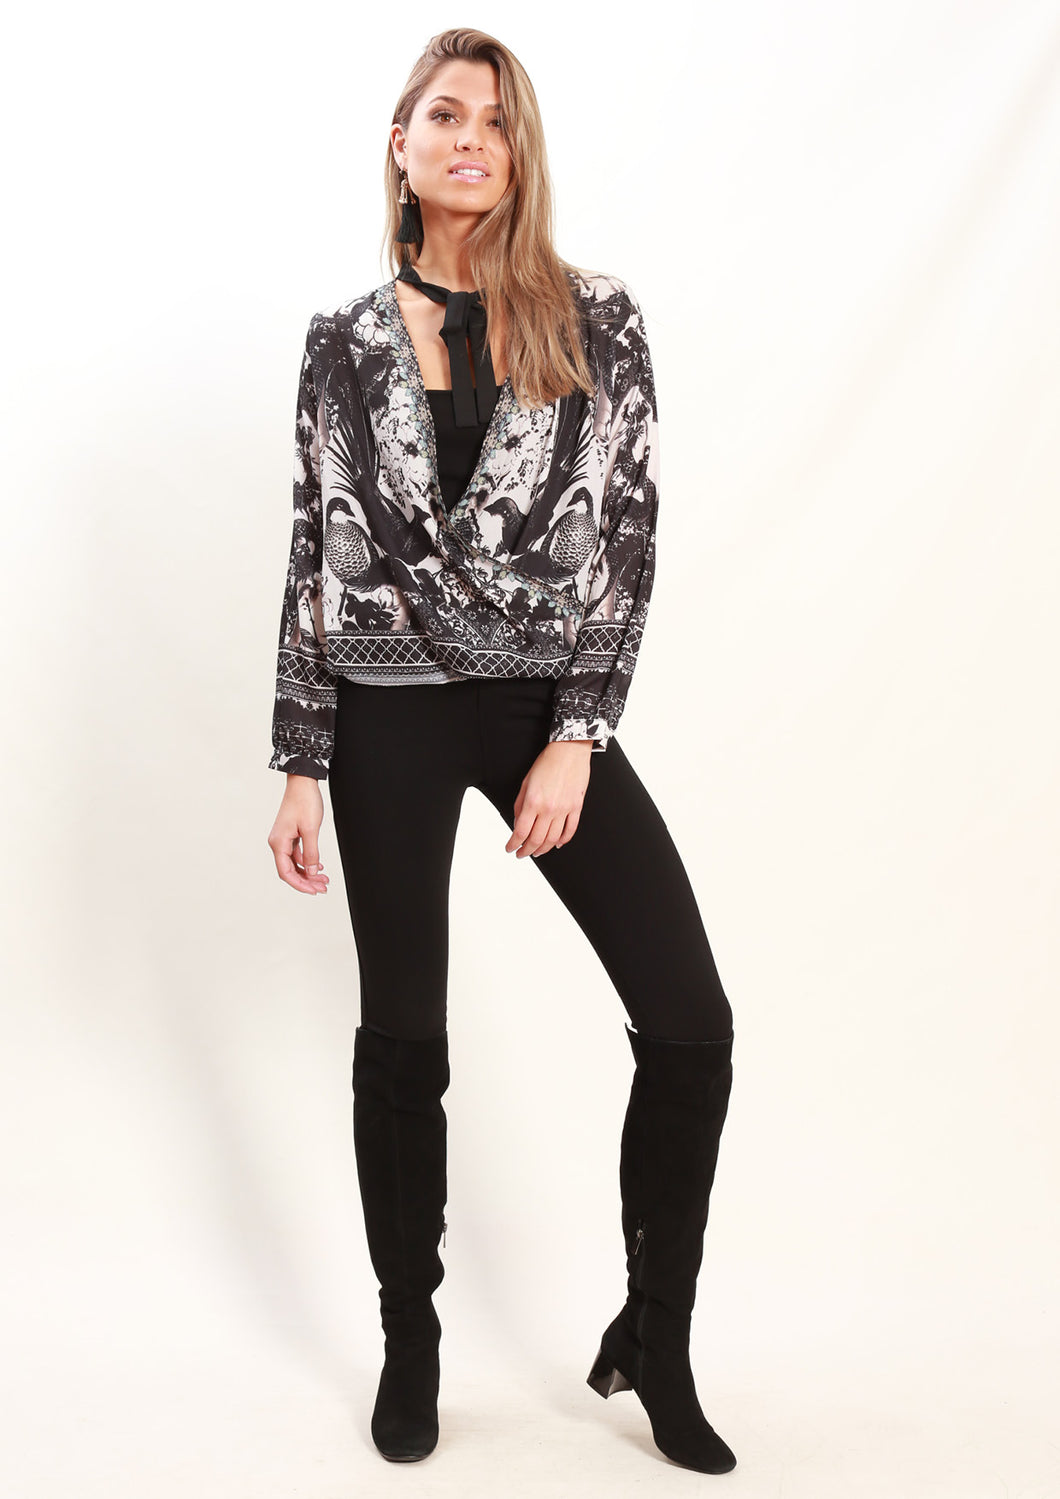 LV961-5SS Ink Painting Print Top (Pack) New Arrivals